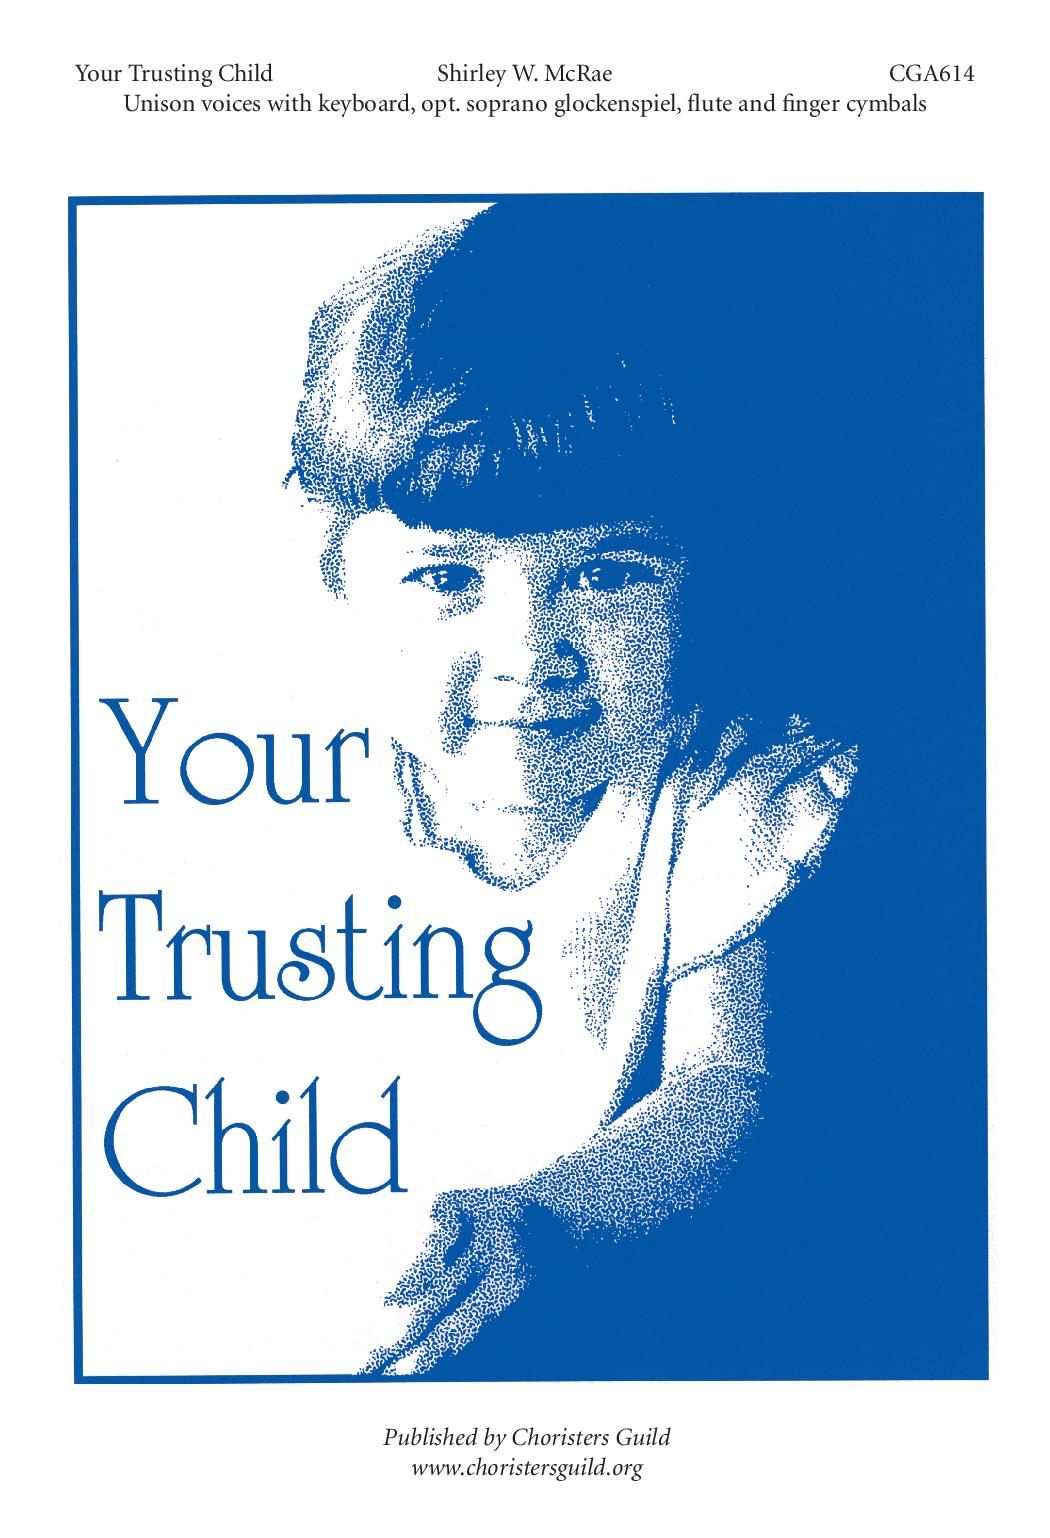 Your Trusting Child